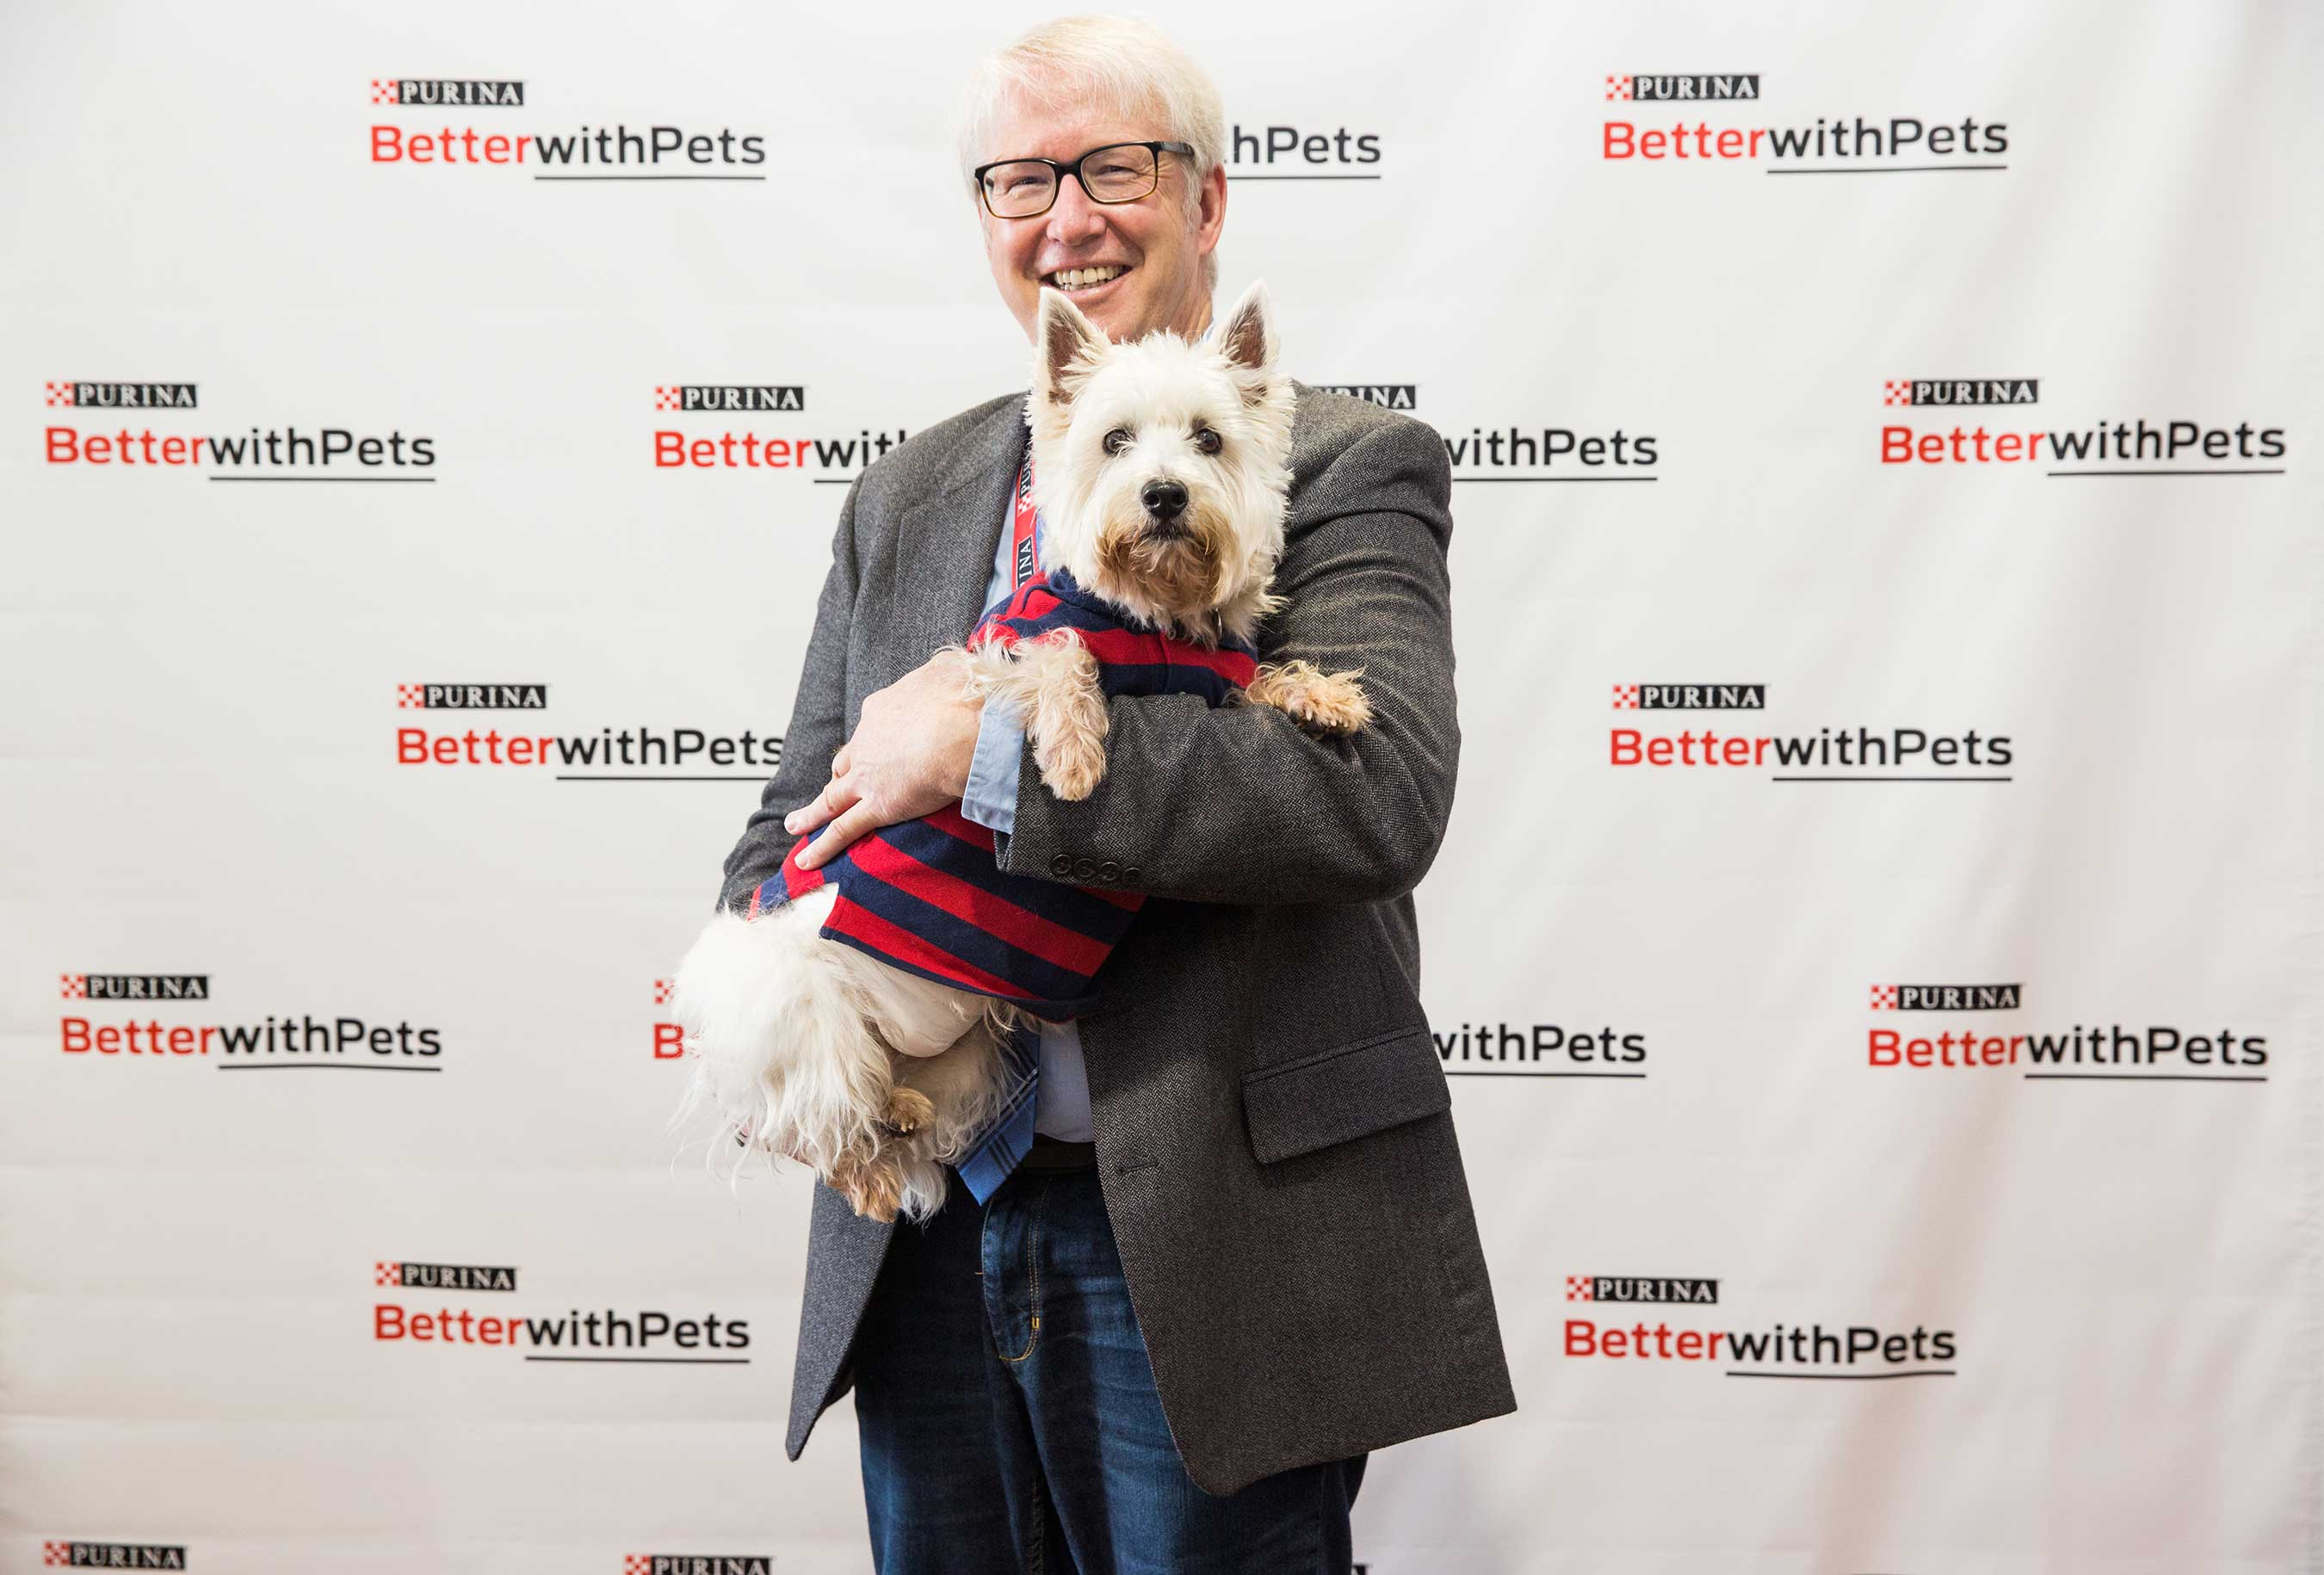 America's Veterinarian, Dr. Marty Becker, with special guest Preston. Dr. Becker shared veterinary advancements and amazing stories with attendees at Purina's Better with Pets Summit.